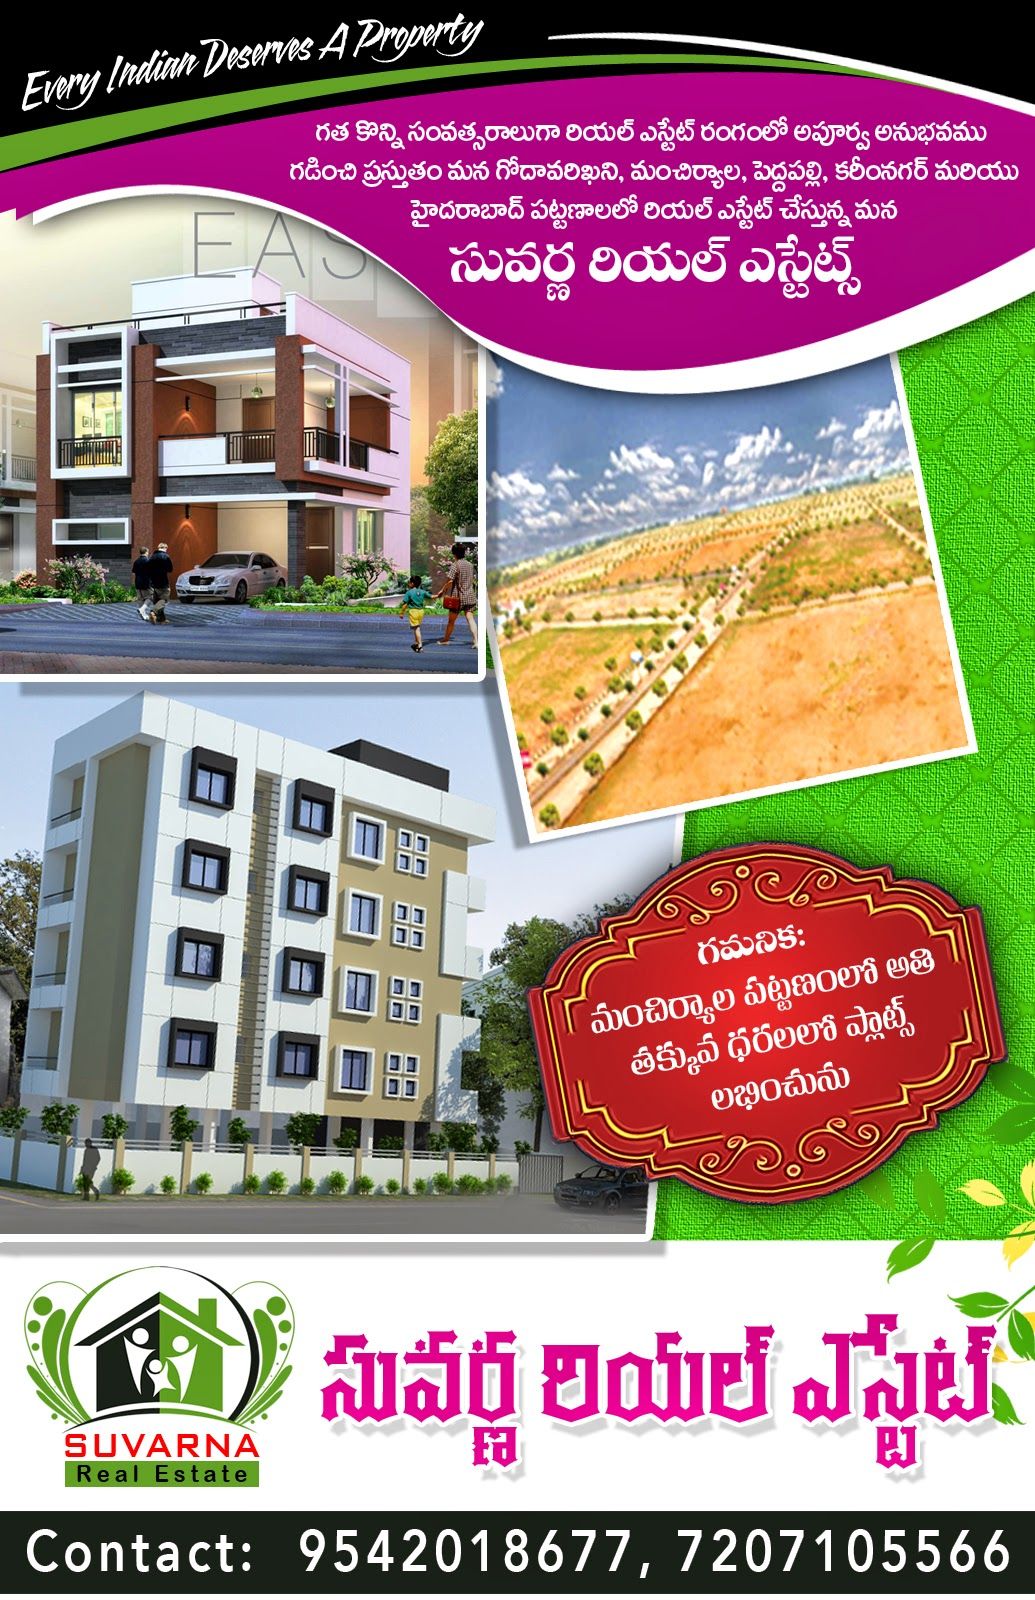 Free Real Estate Flyer Templates Download Suvarna Real Estate Best - Free real estate flyer templates download